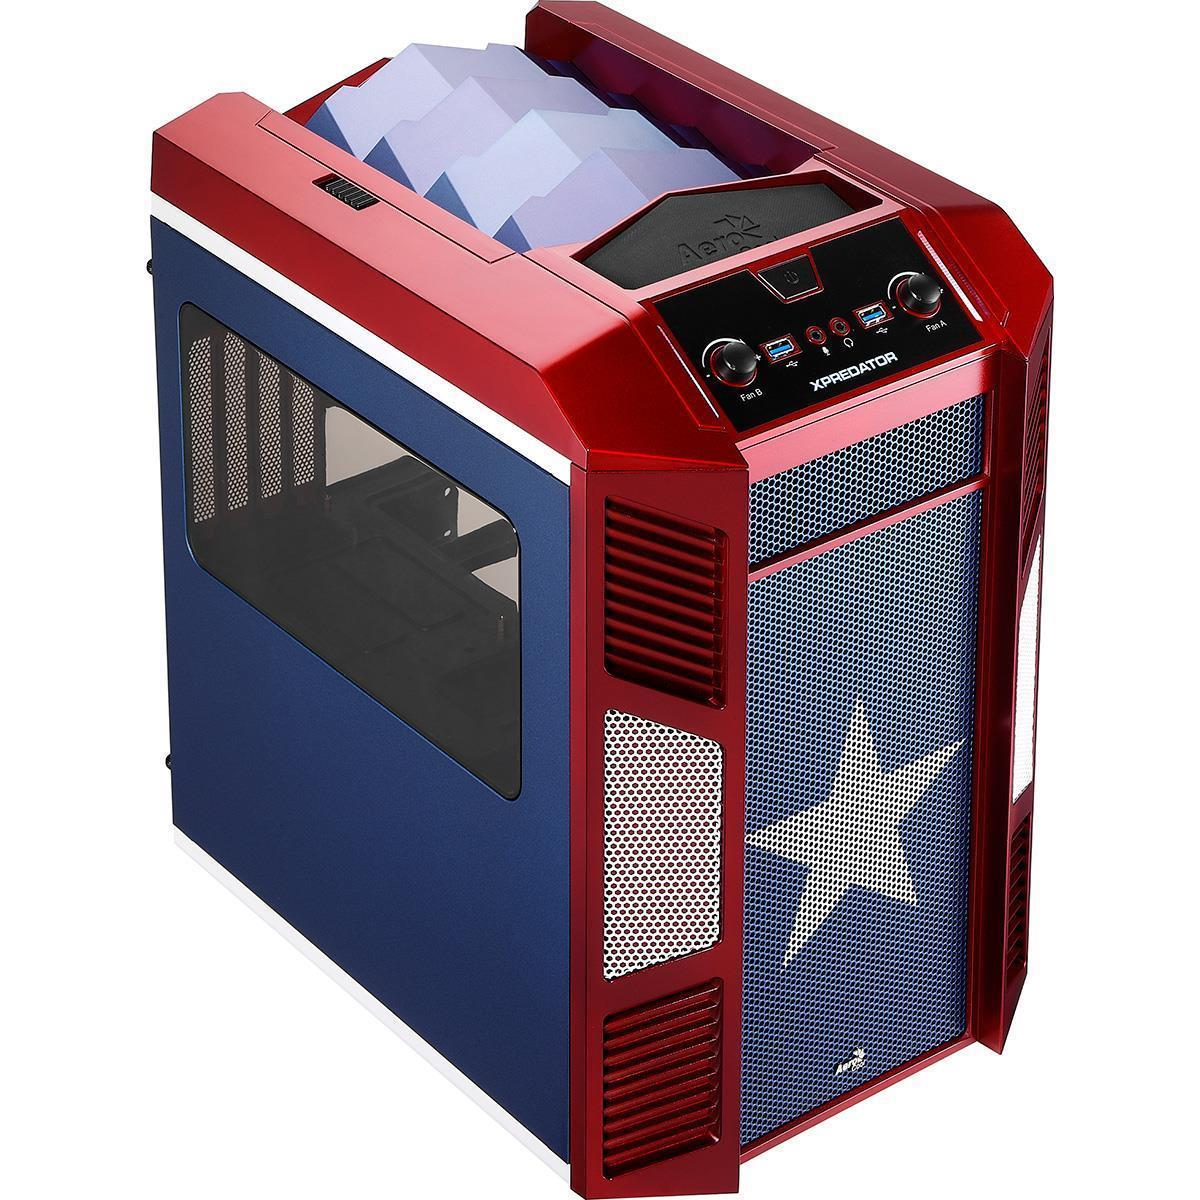 Cube Mini Patriot Gaming PC AMD A10 with Radeon R7 260X 2Gb Graphics